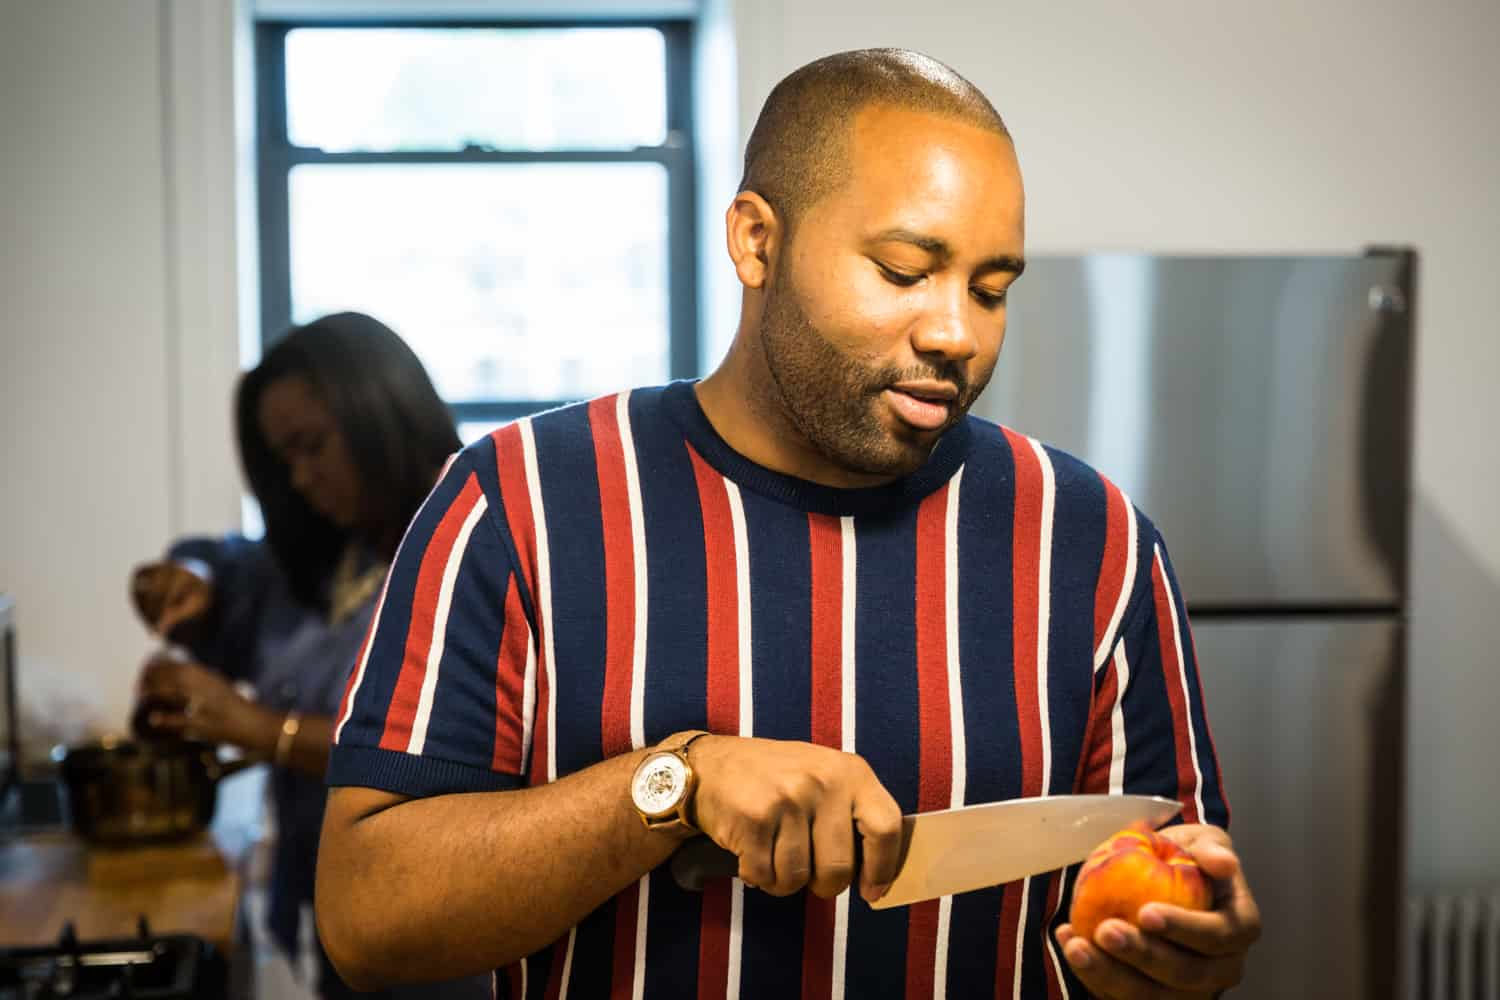 African American man cutting peach for an article on creative engagement photo shoot ideas